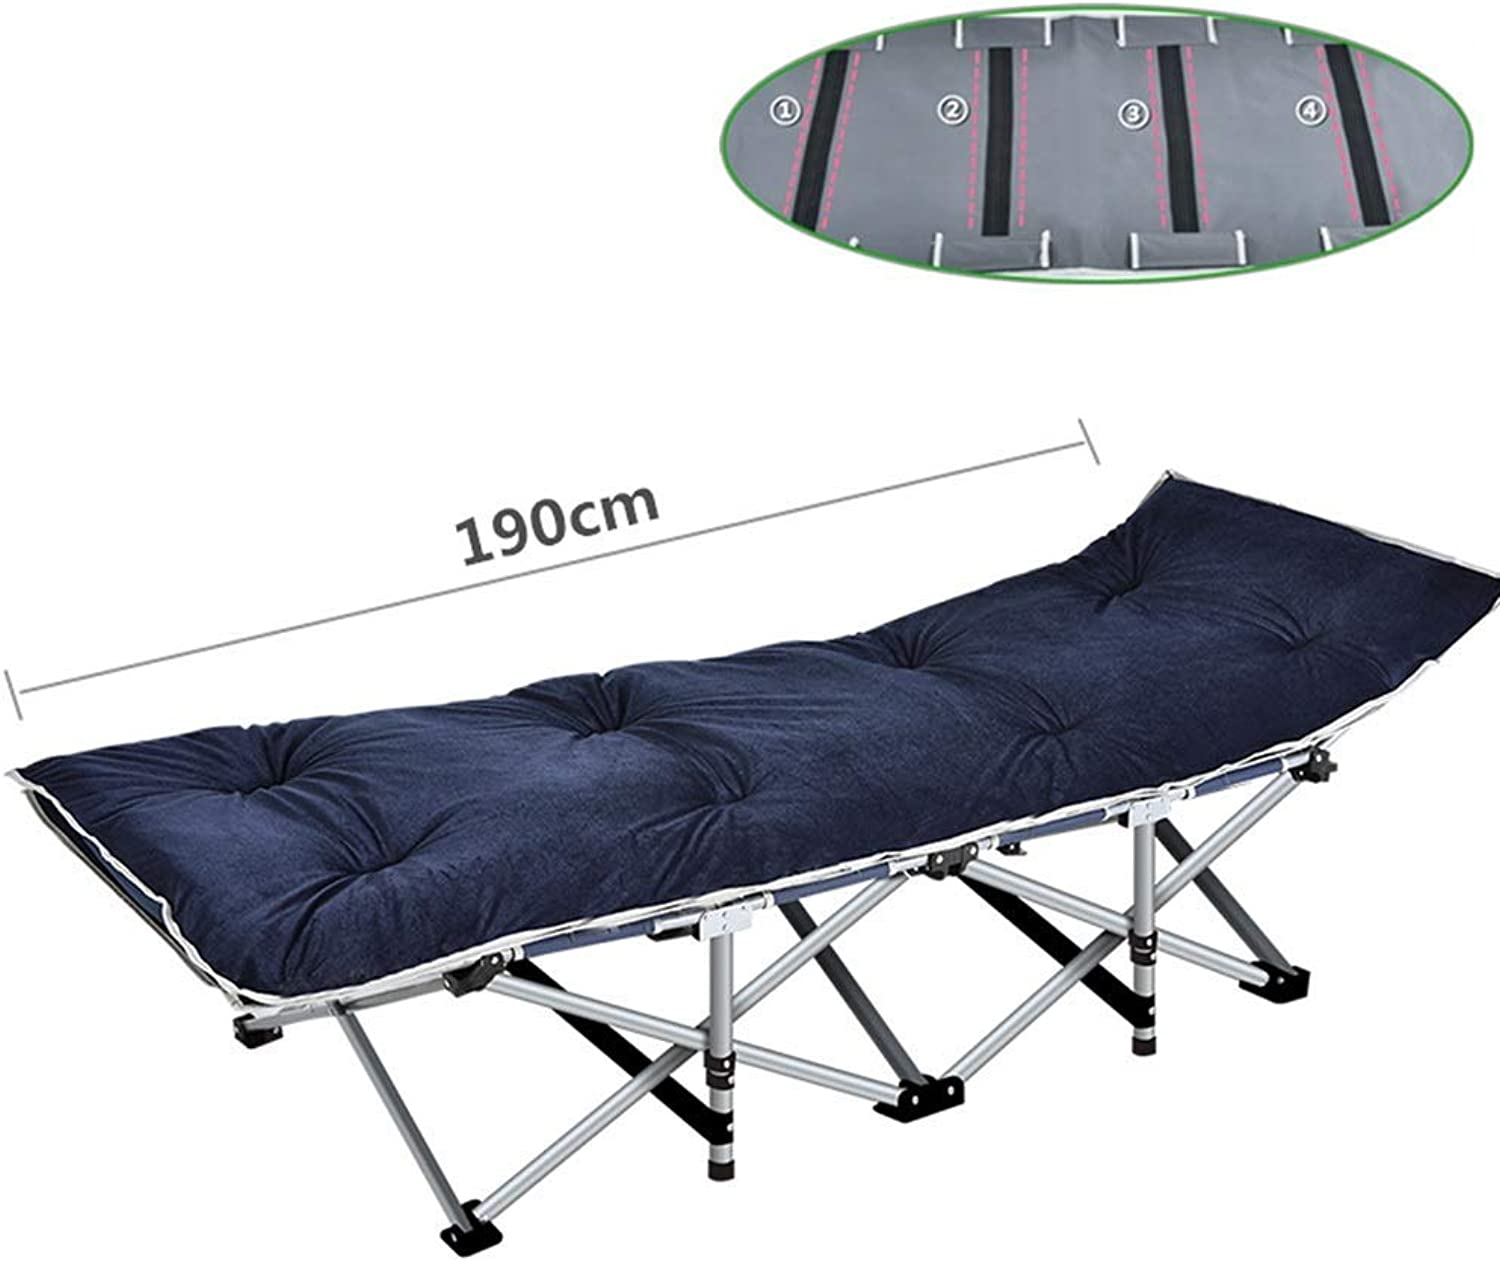 Recliners Heavy Duty Folding Camping Cot Bed with Cushions, Portable Bed for Adults Kids, Sun Lounger with Carry Bag for Camping Home Office, Support 400kg